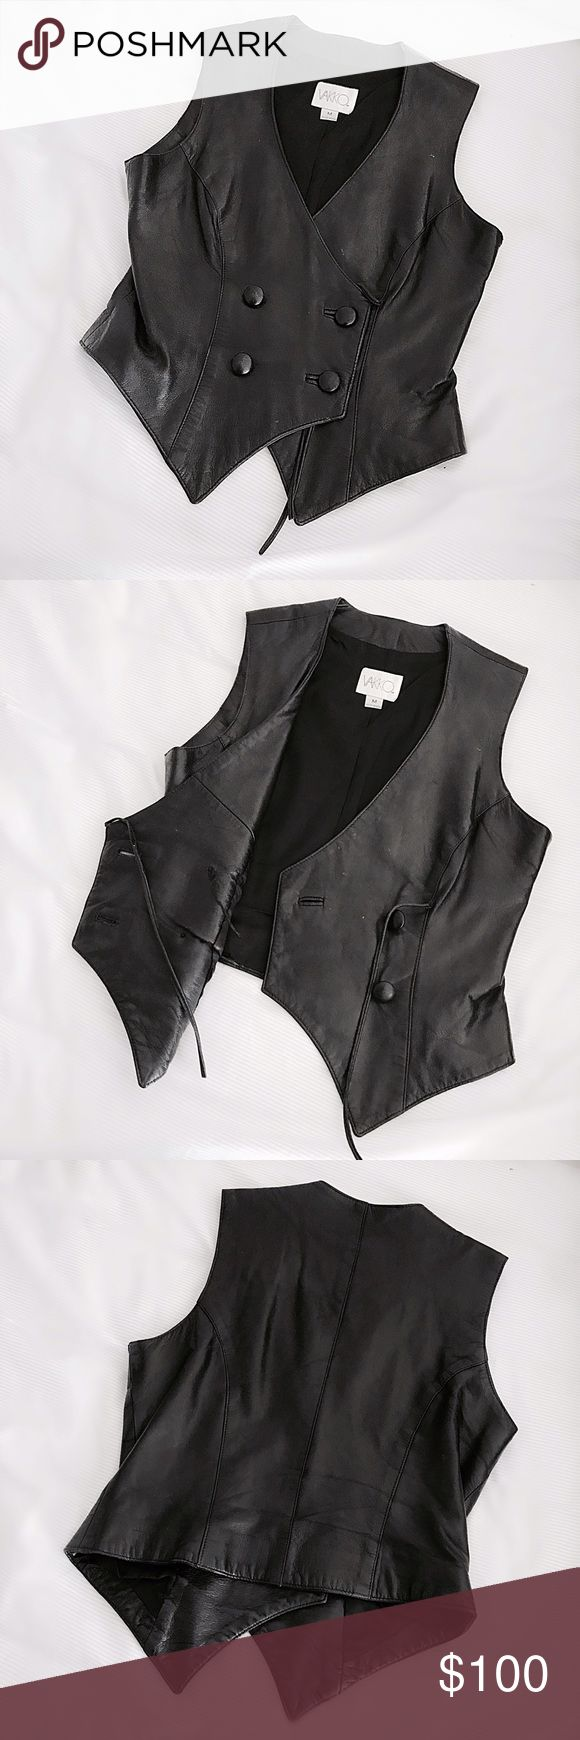 "Vintage Vakko Leather Tuxedo Vest Butter soft black leather vest by Vakko leather with a double breasted, exaggerated silhouette. Button and optional tie closure, super cool over an oversized button down with loose fit jeans and loafers. Approx 24""L and 18""pit to put. Marked size M, fits true to size but can be worn on a size S as well if you like a slightly boxy fit. Excellent vintage condition with some very slight marks and buttons are a little loose (can be re-sewn if you think it's…"